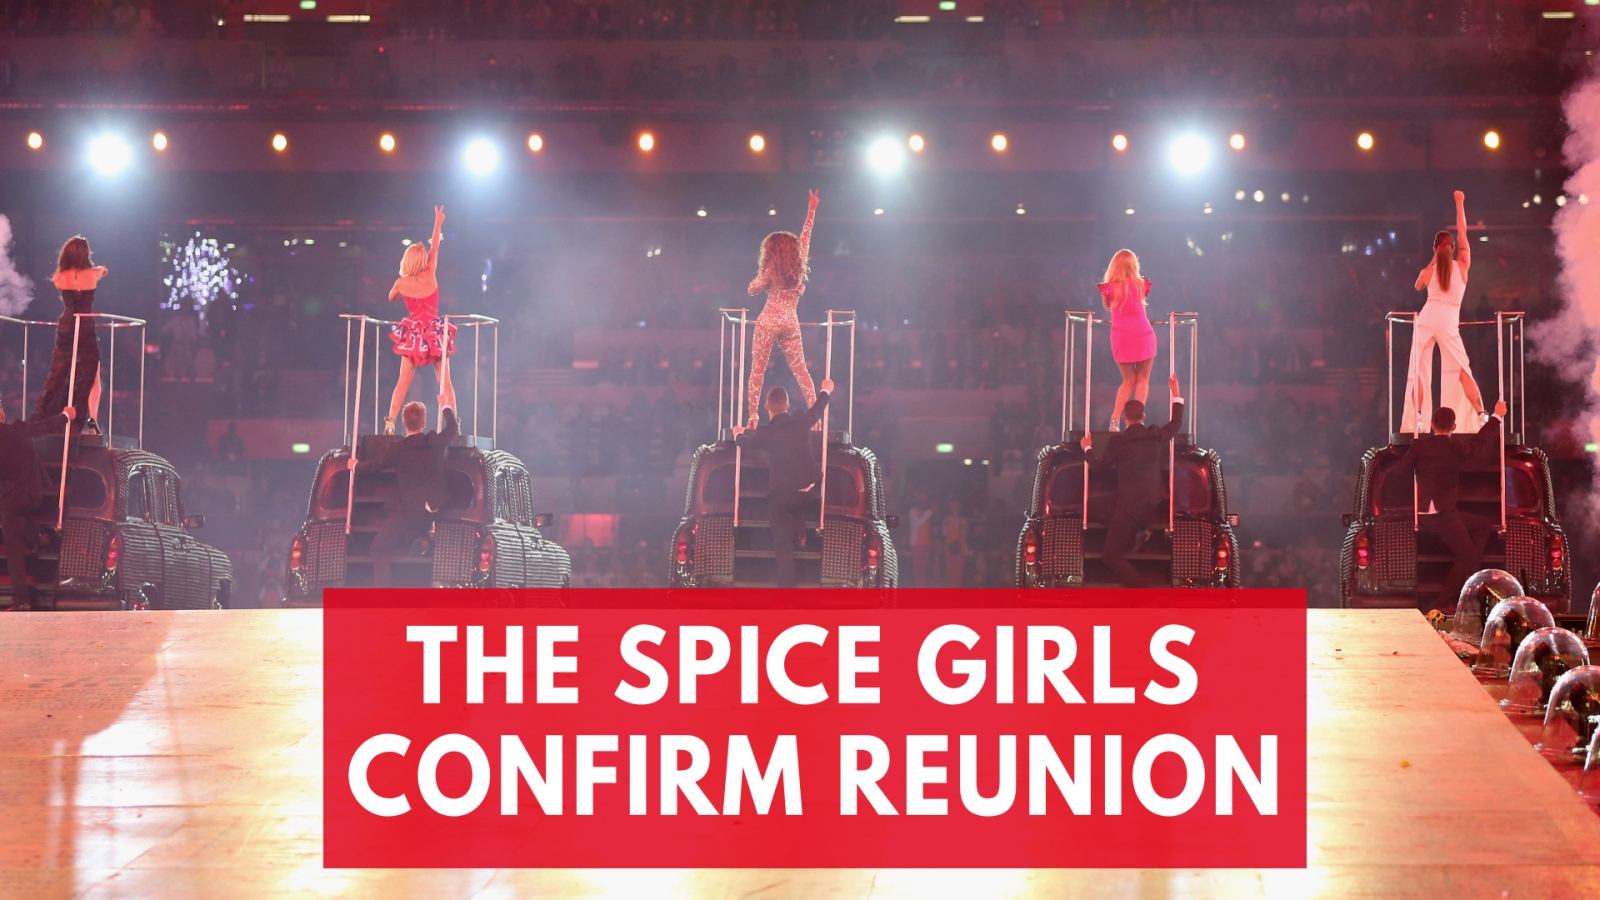 The Spice Girls Are Reuniting To Work On 'New Opportunities' Together